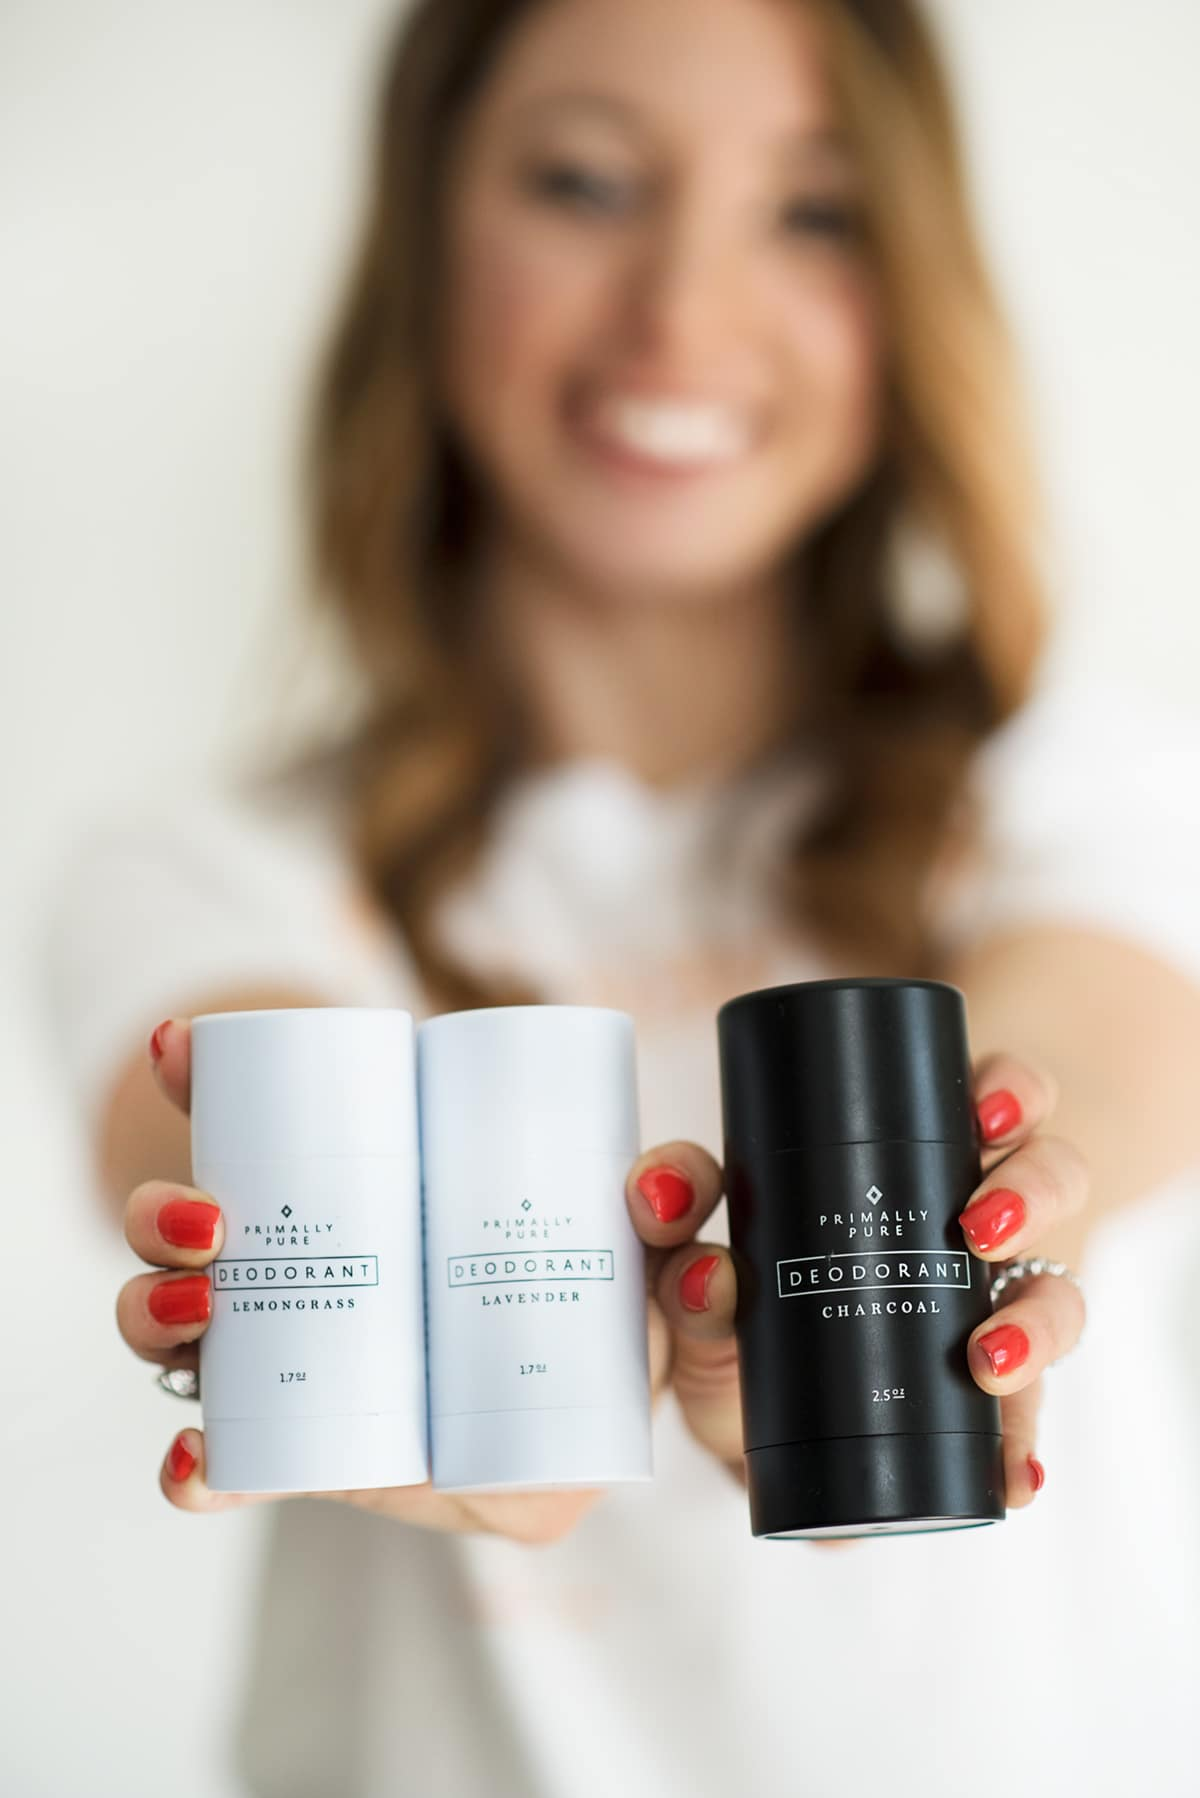 Lexi holding clean beauty brands of deodorant